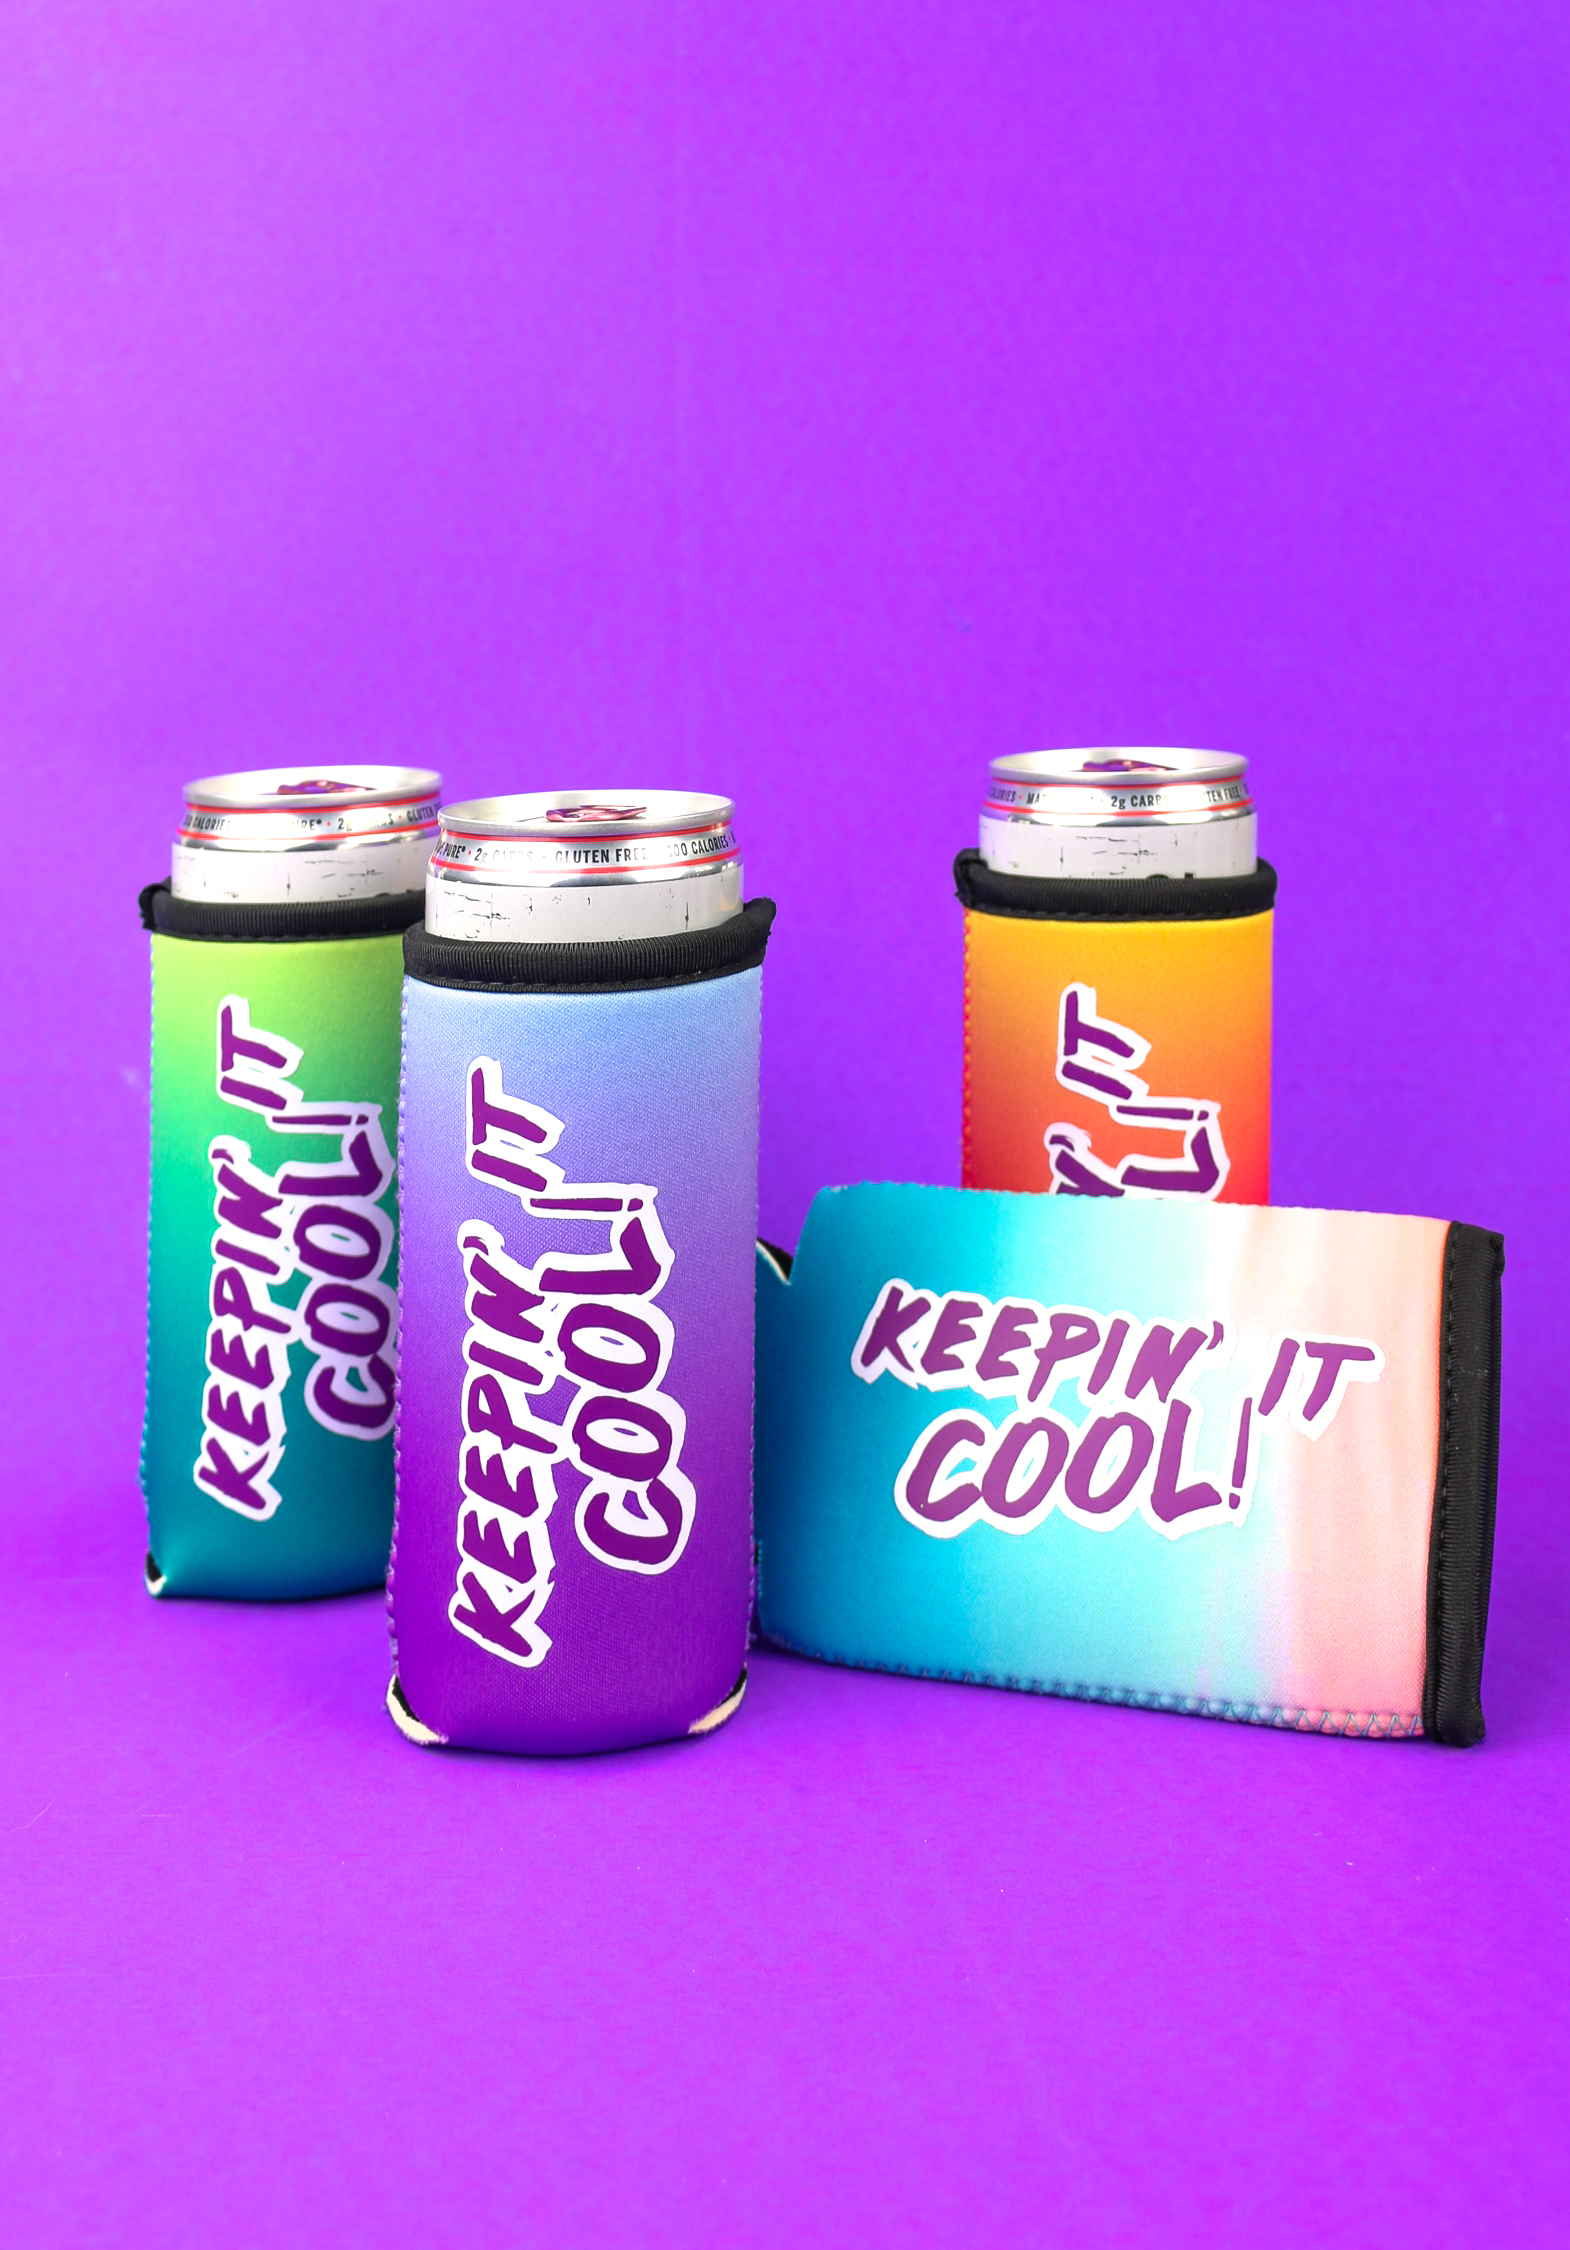 Cans of White Claw in personalized can koozies